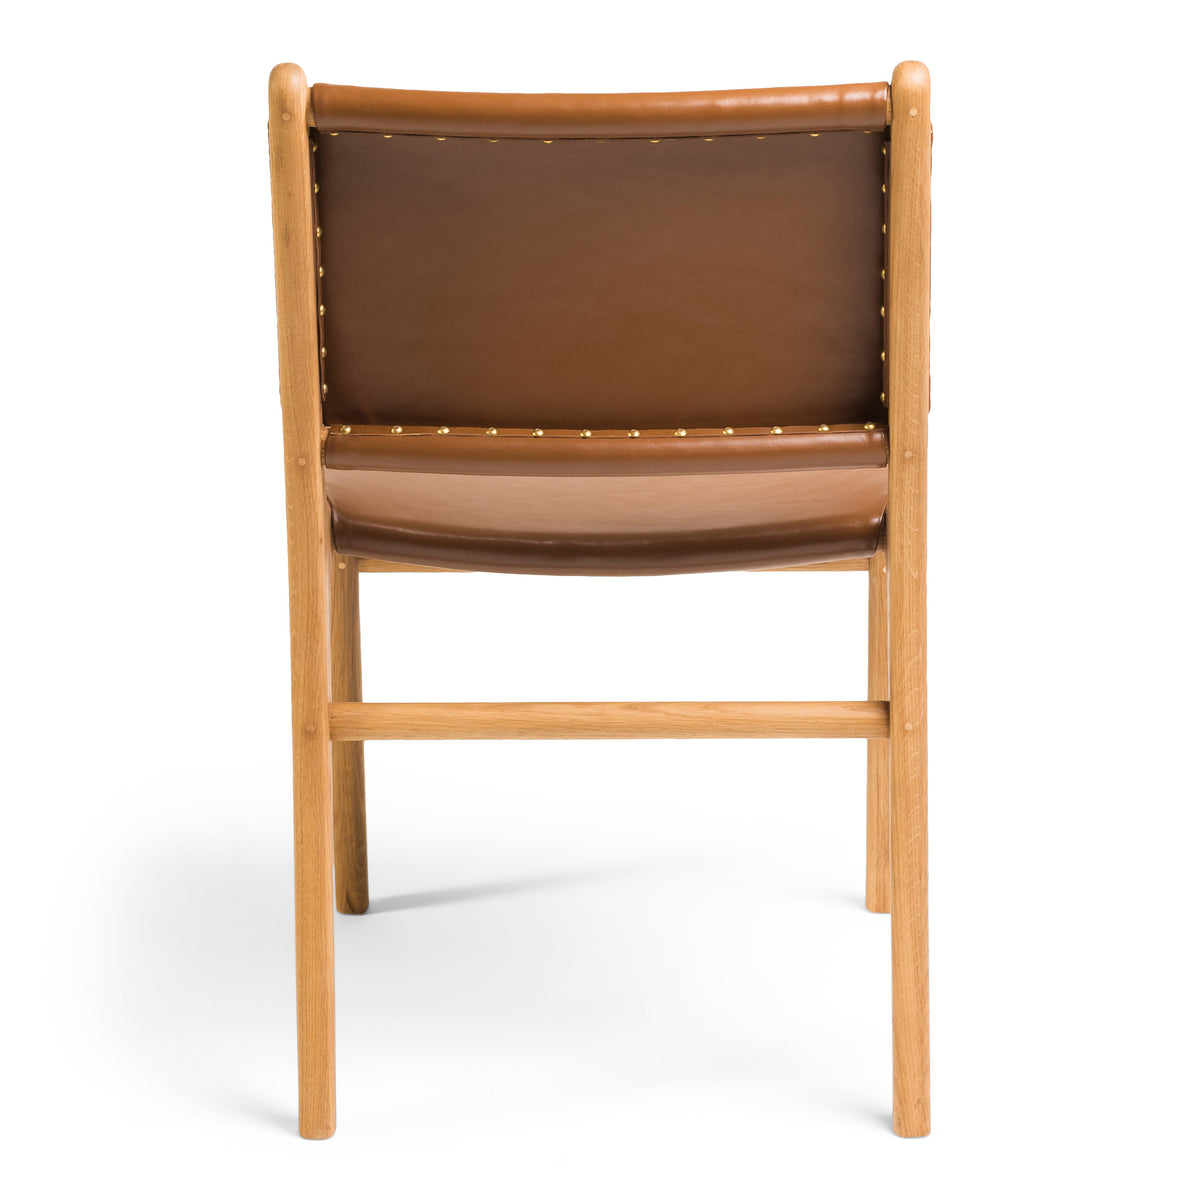 Spensley Dining Chair Oak - Tan